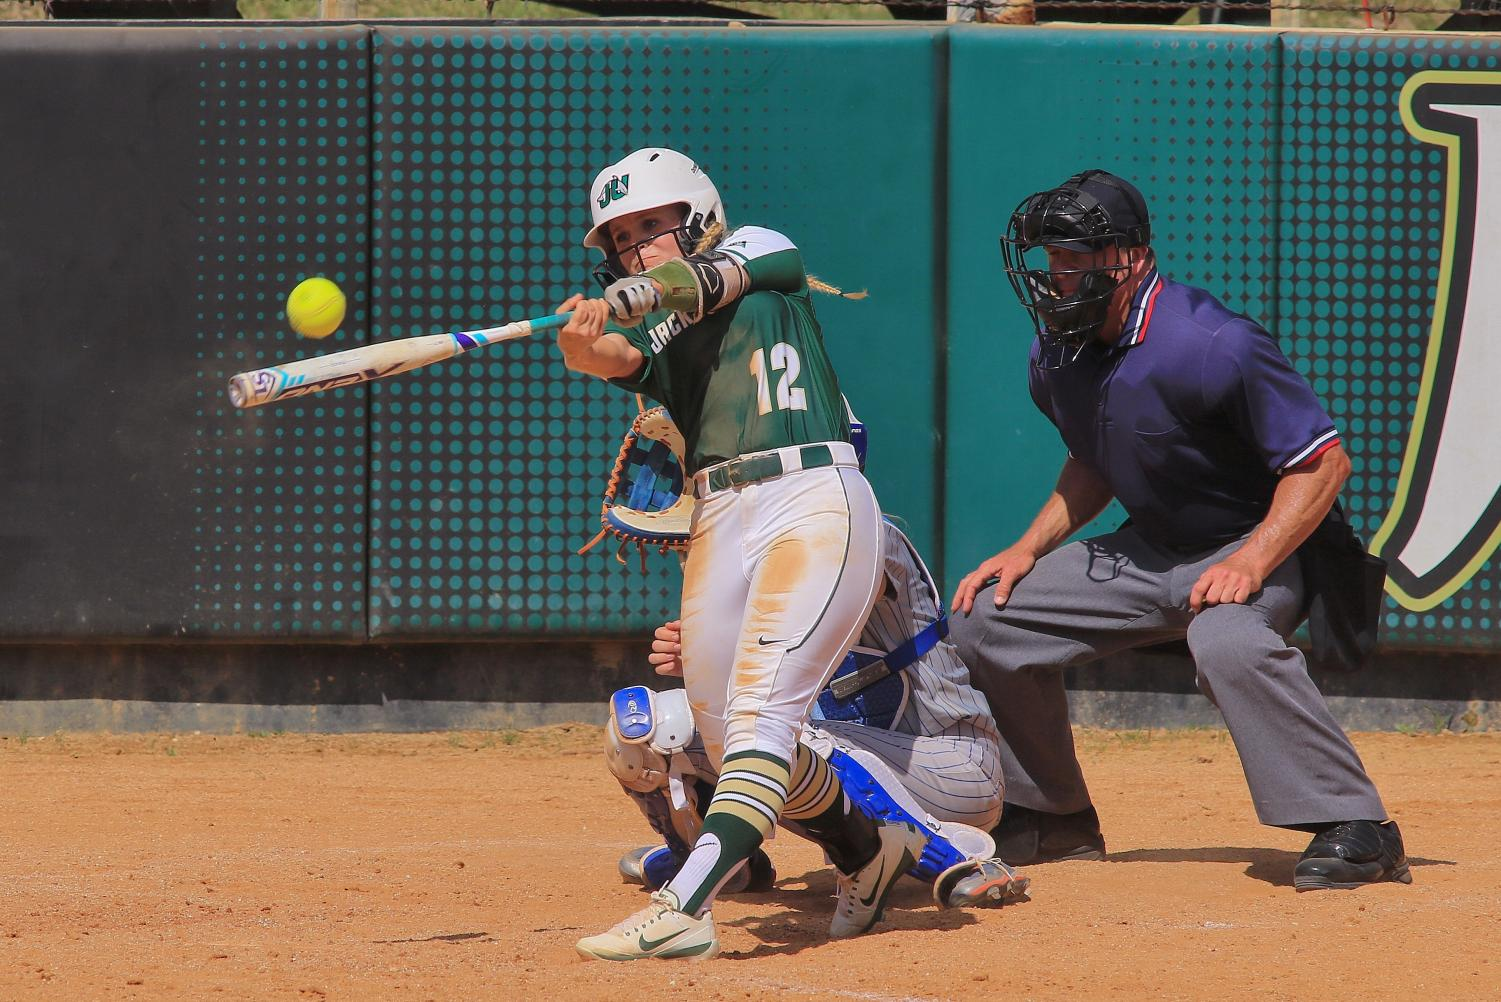 Allie McCourt swings at home base against the University of Tennessee Arlington. The Dolphins won 3-1.